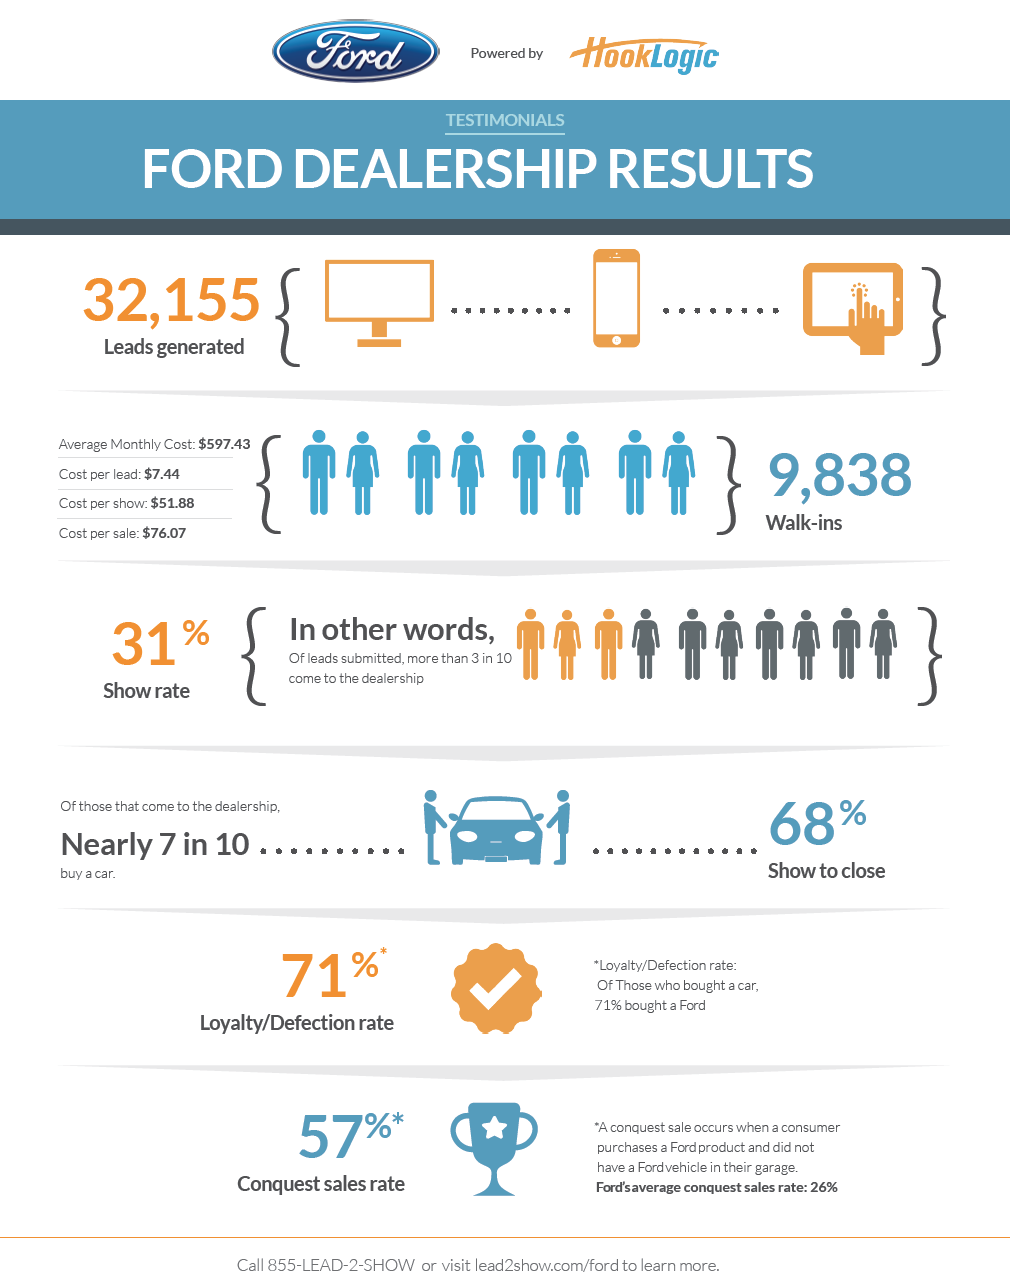 FORD 2014 hooklogic performance results